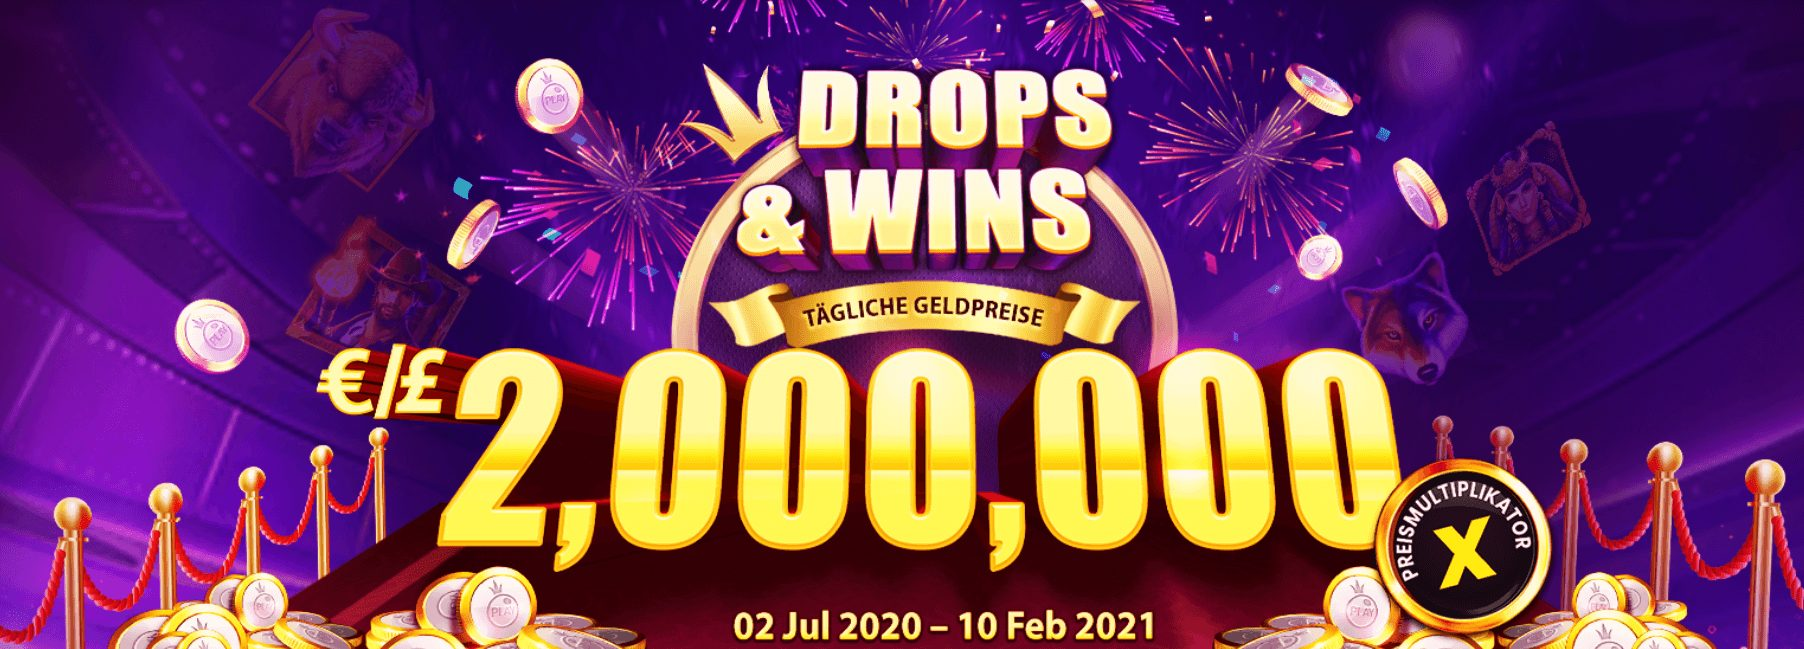 Drops & Wins Aktion von Pragmatic Play Banner